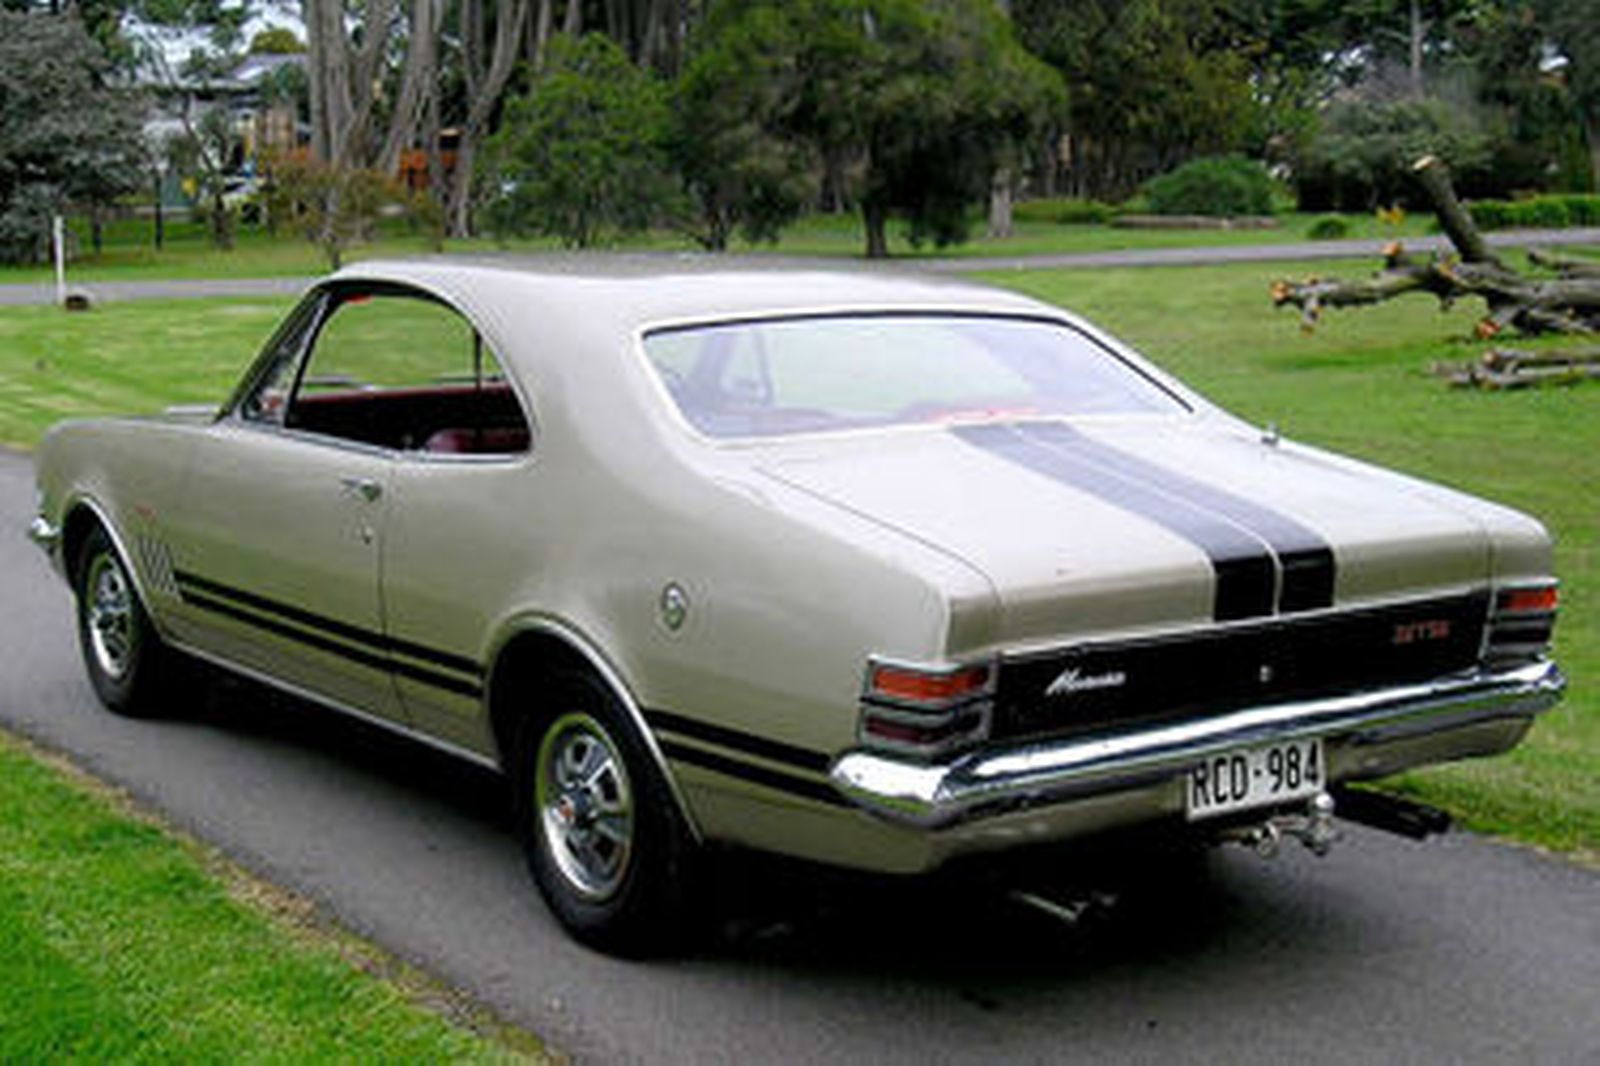 Holden Ht Monaro Gts 350 Coupe Auctions Lot 40 Shannons